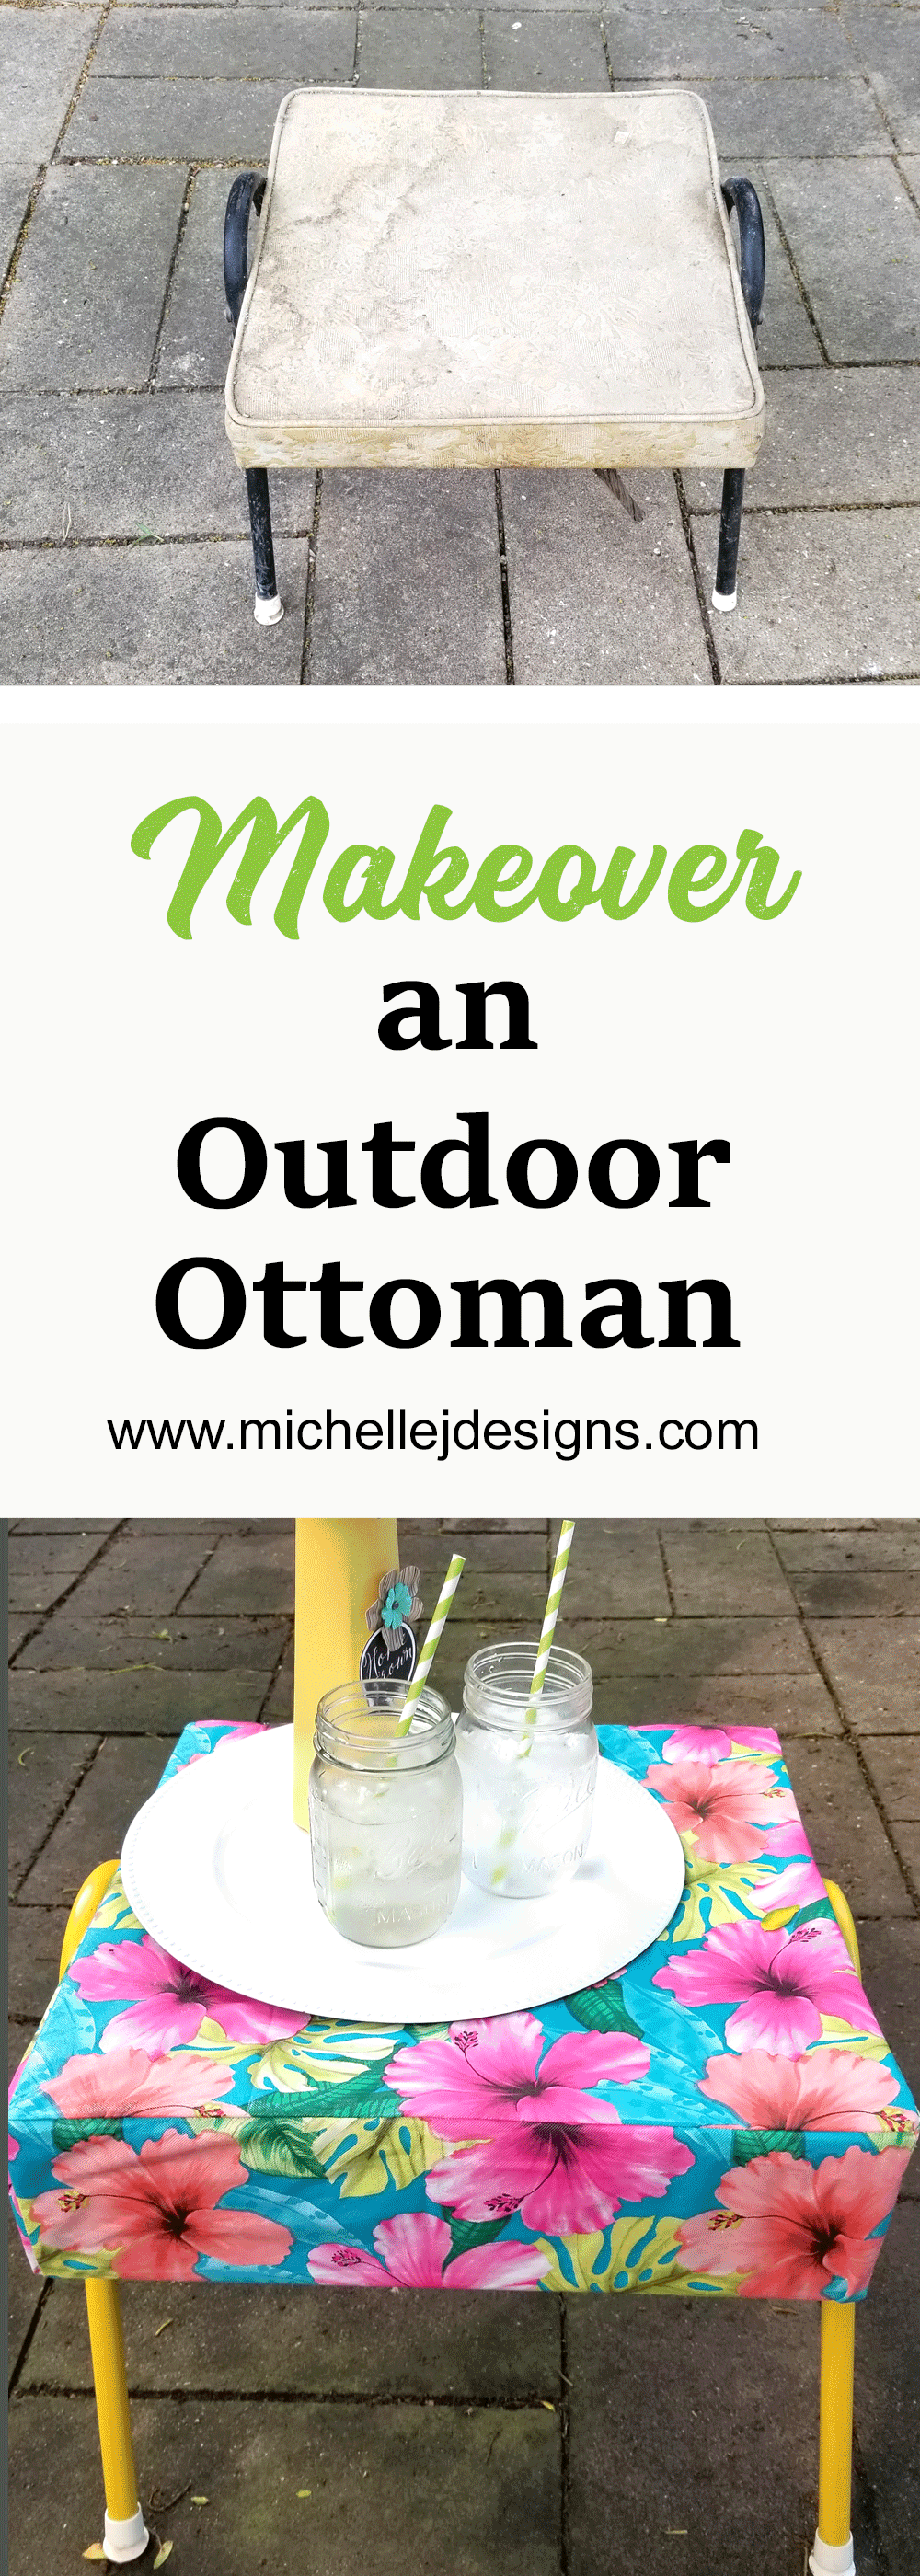 I am loving this finished ottoman makeover for our backyard patio space.